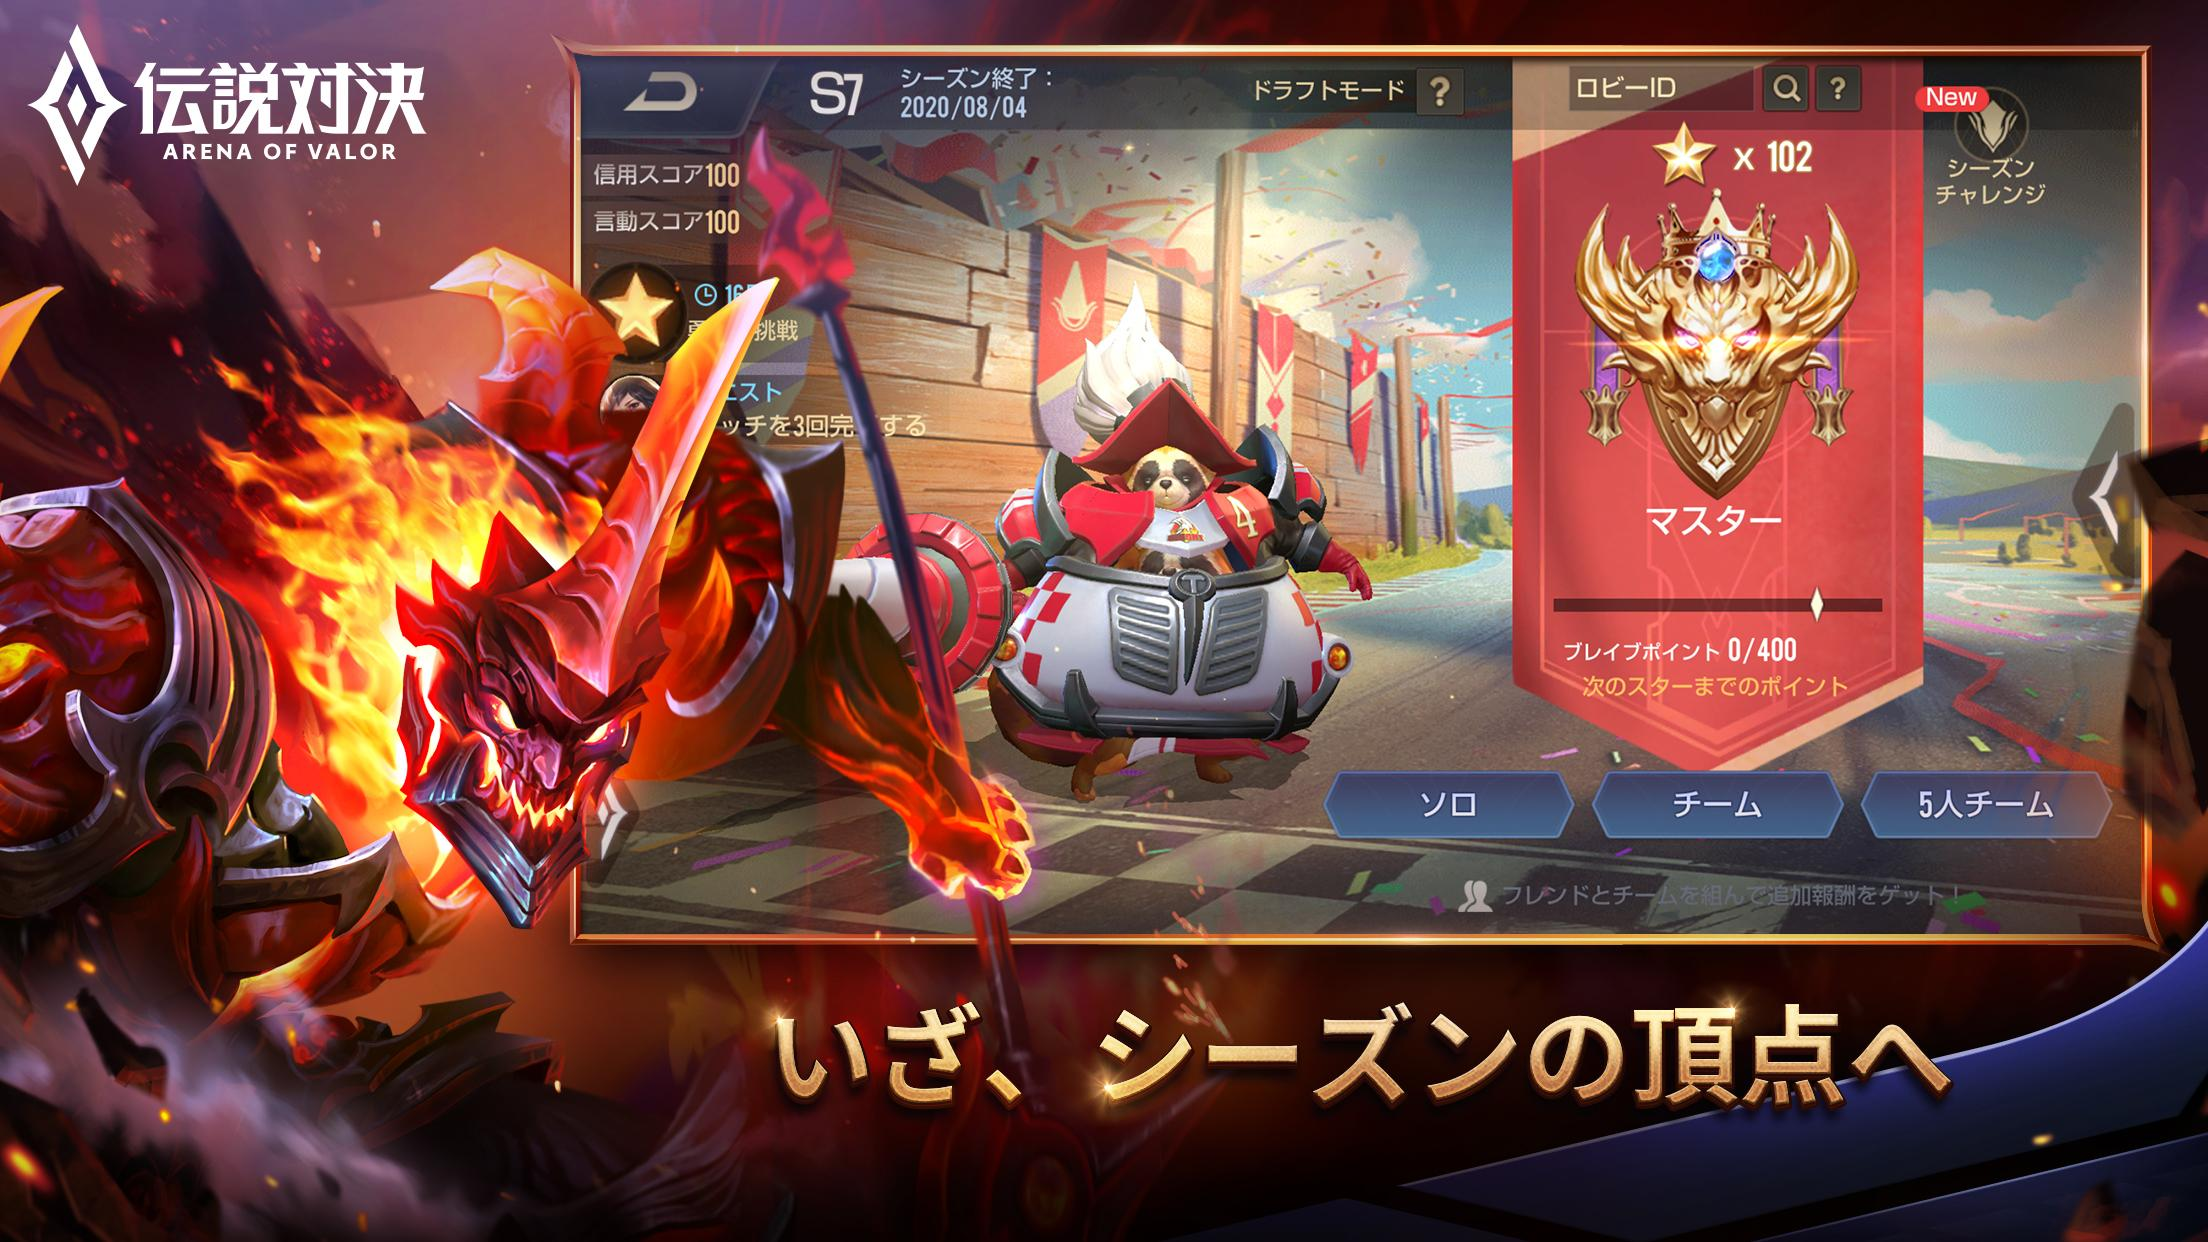 伝説対決 Arena of Valor 1.36.1.8 Screenshot 8